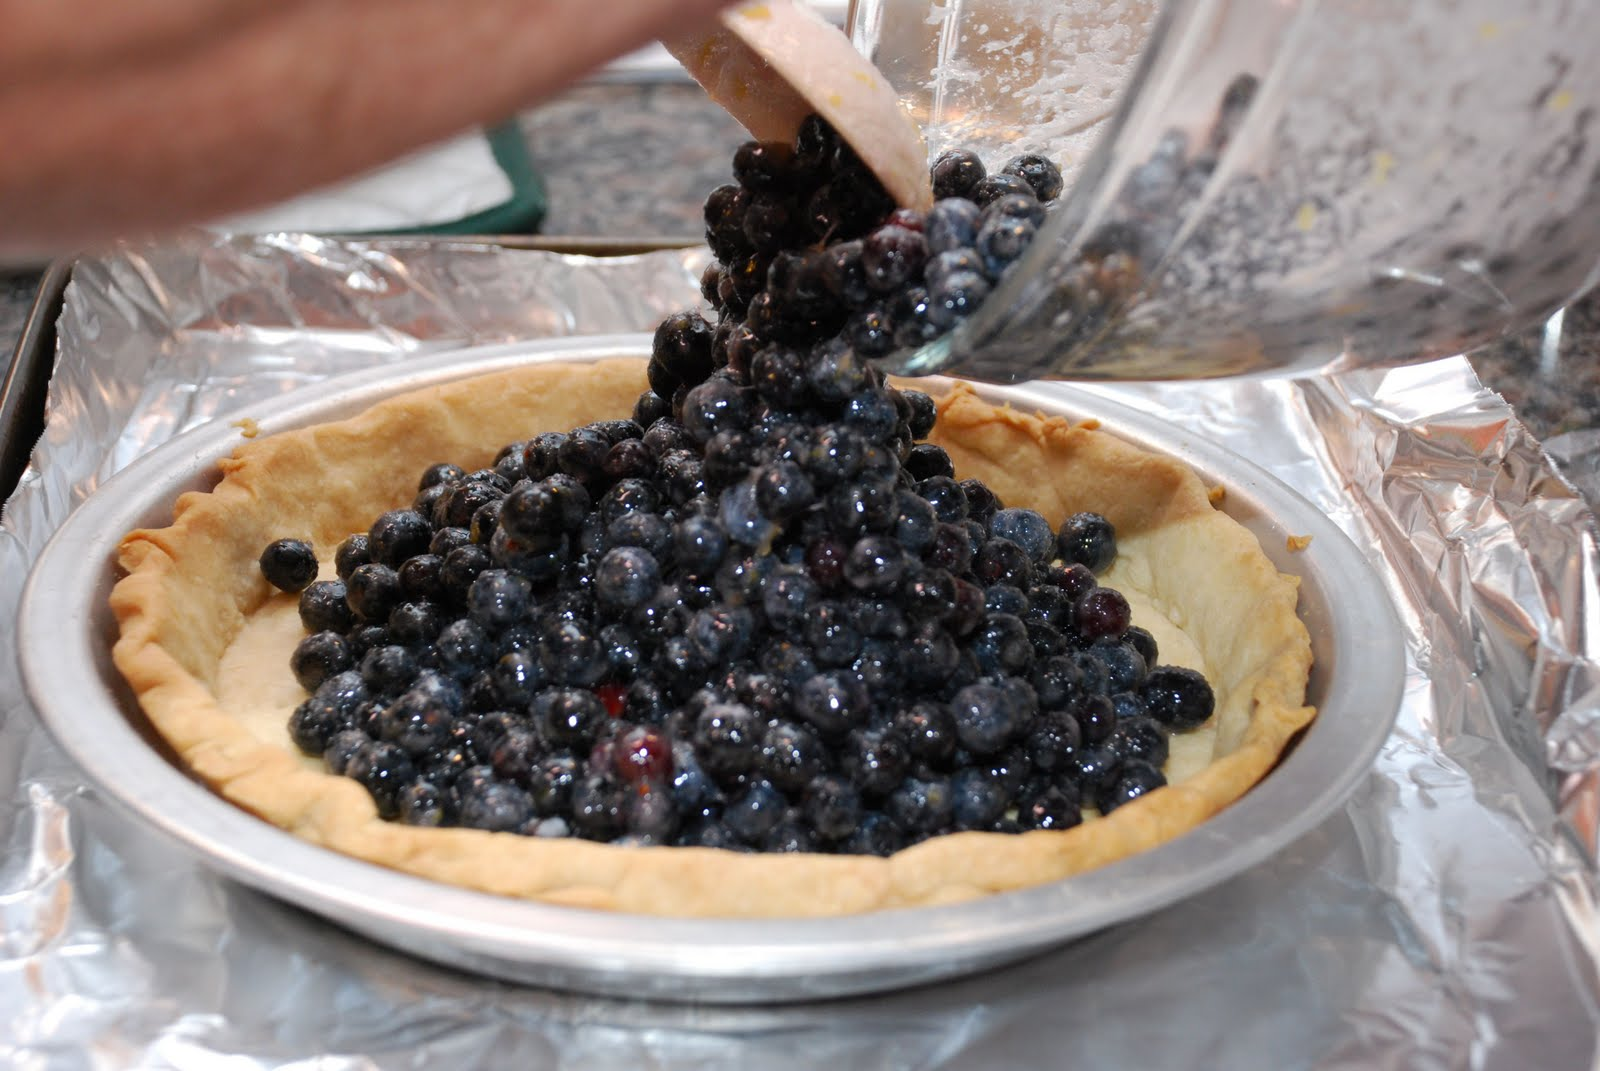 He tackled a blueberry crumble pie for our Sunday Supper.